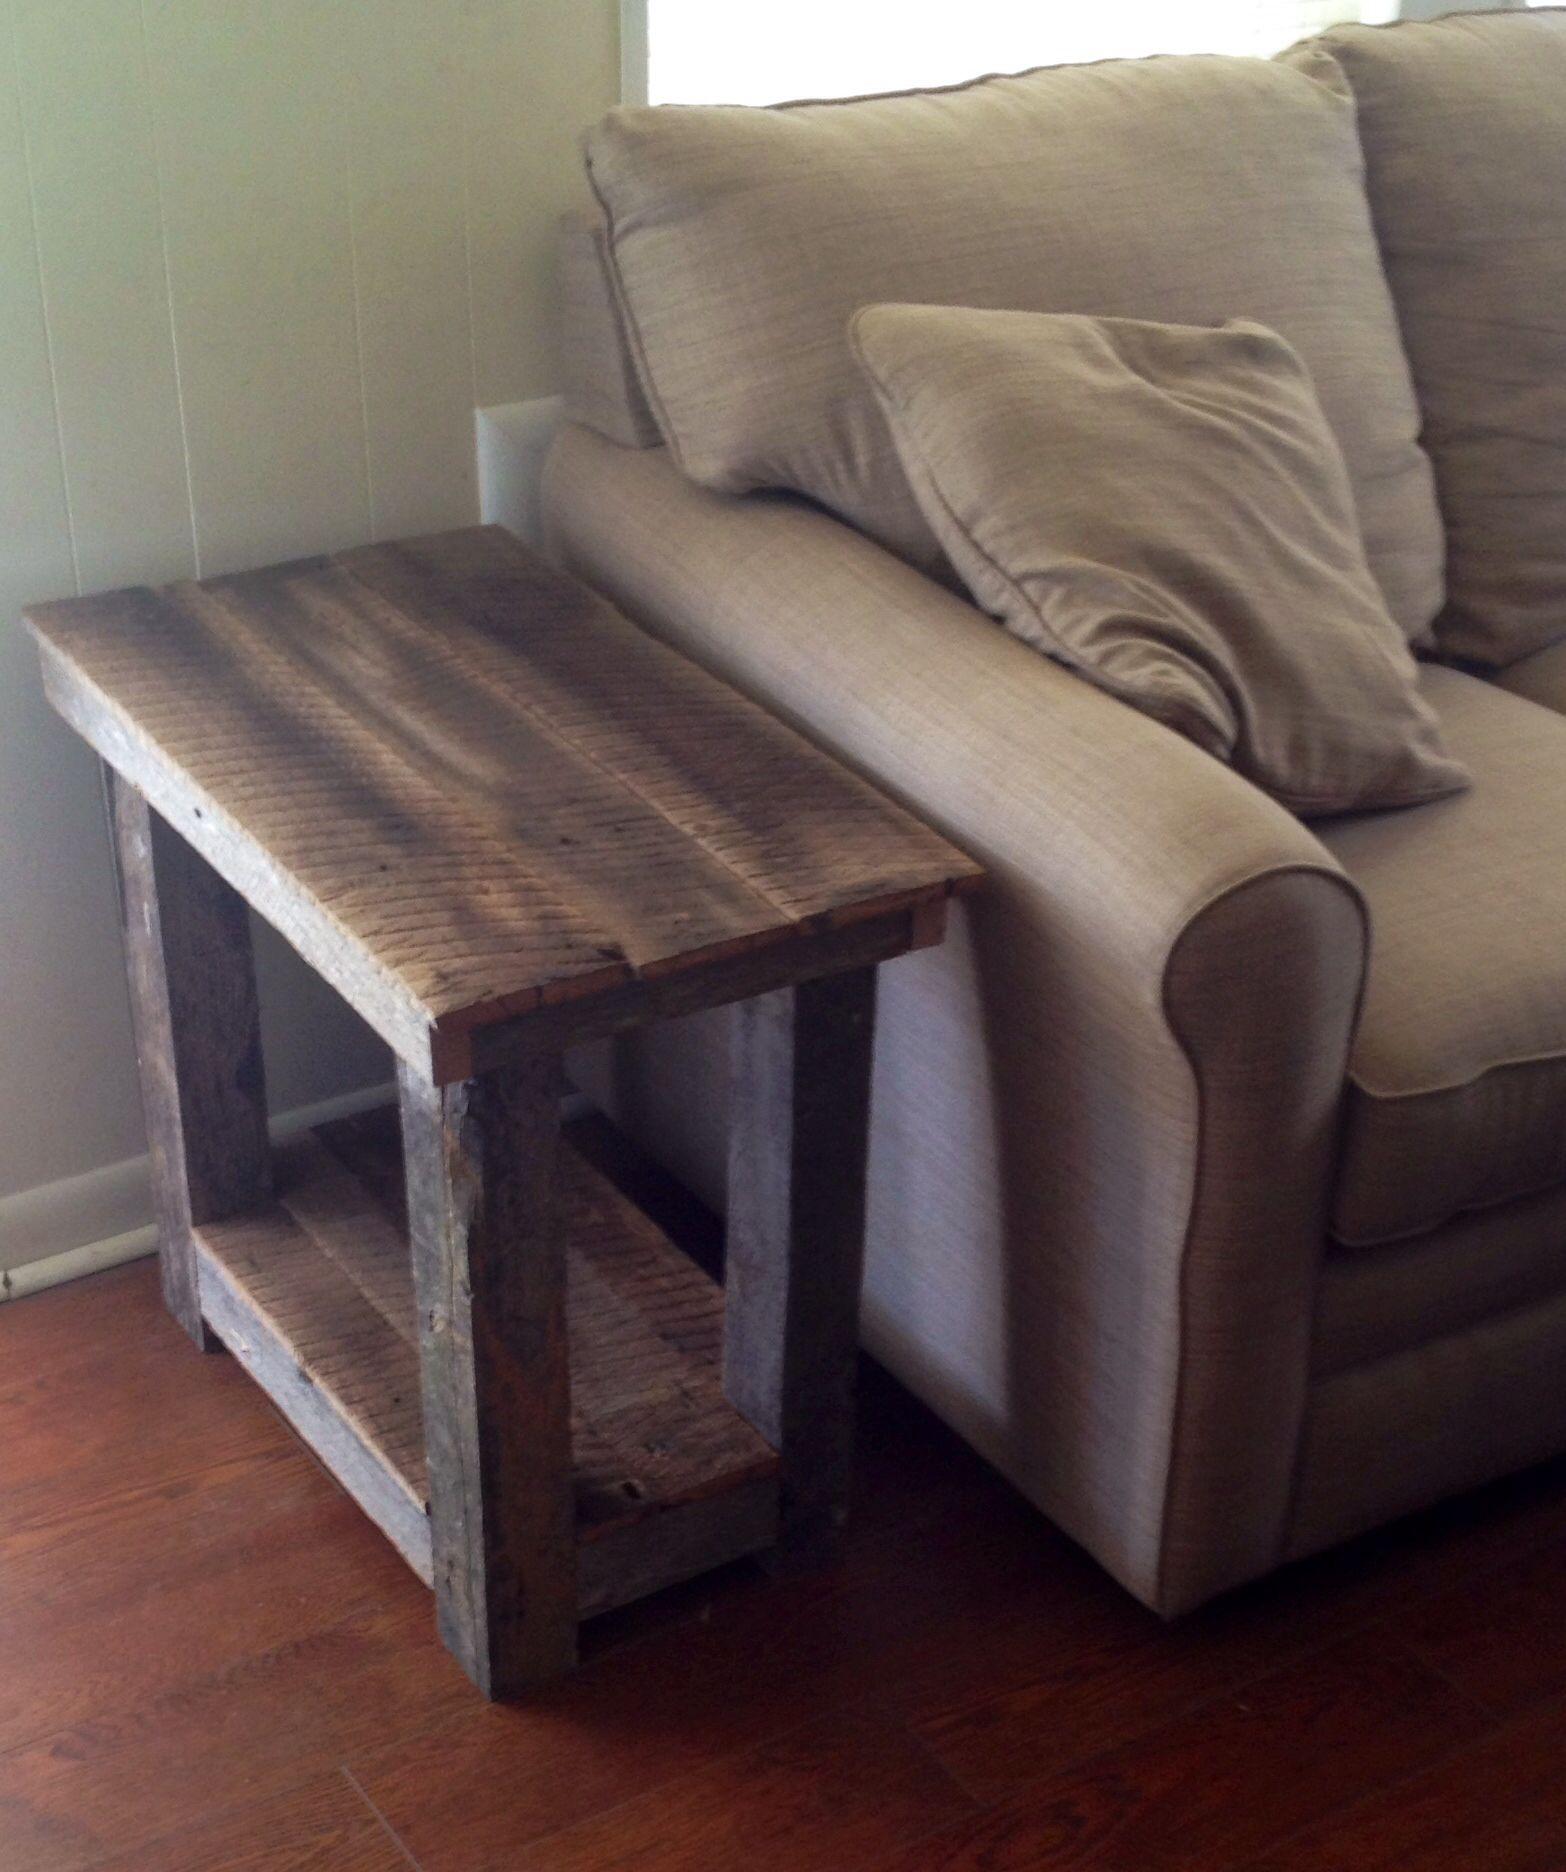 Pin By Jeremy Smith On My Projects Wood Furniture Plans